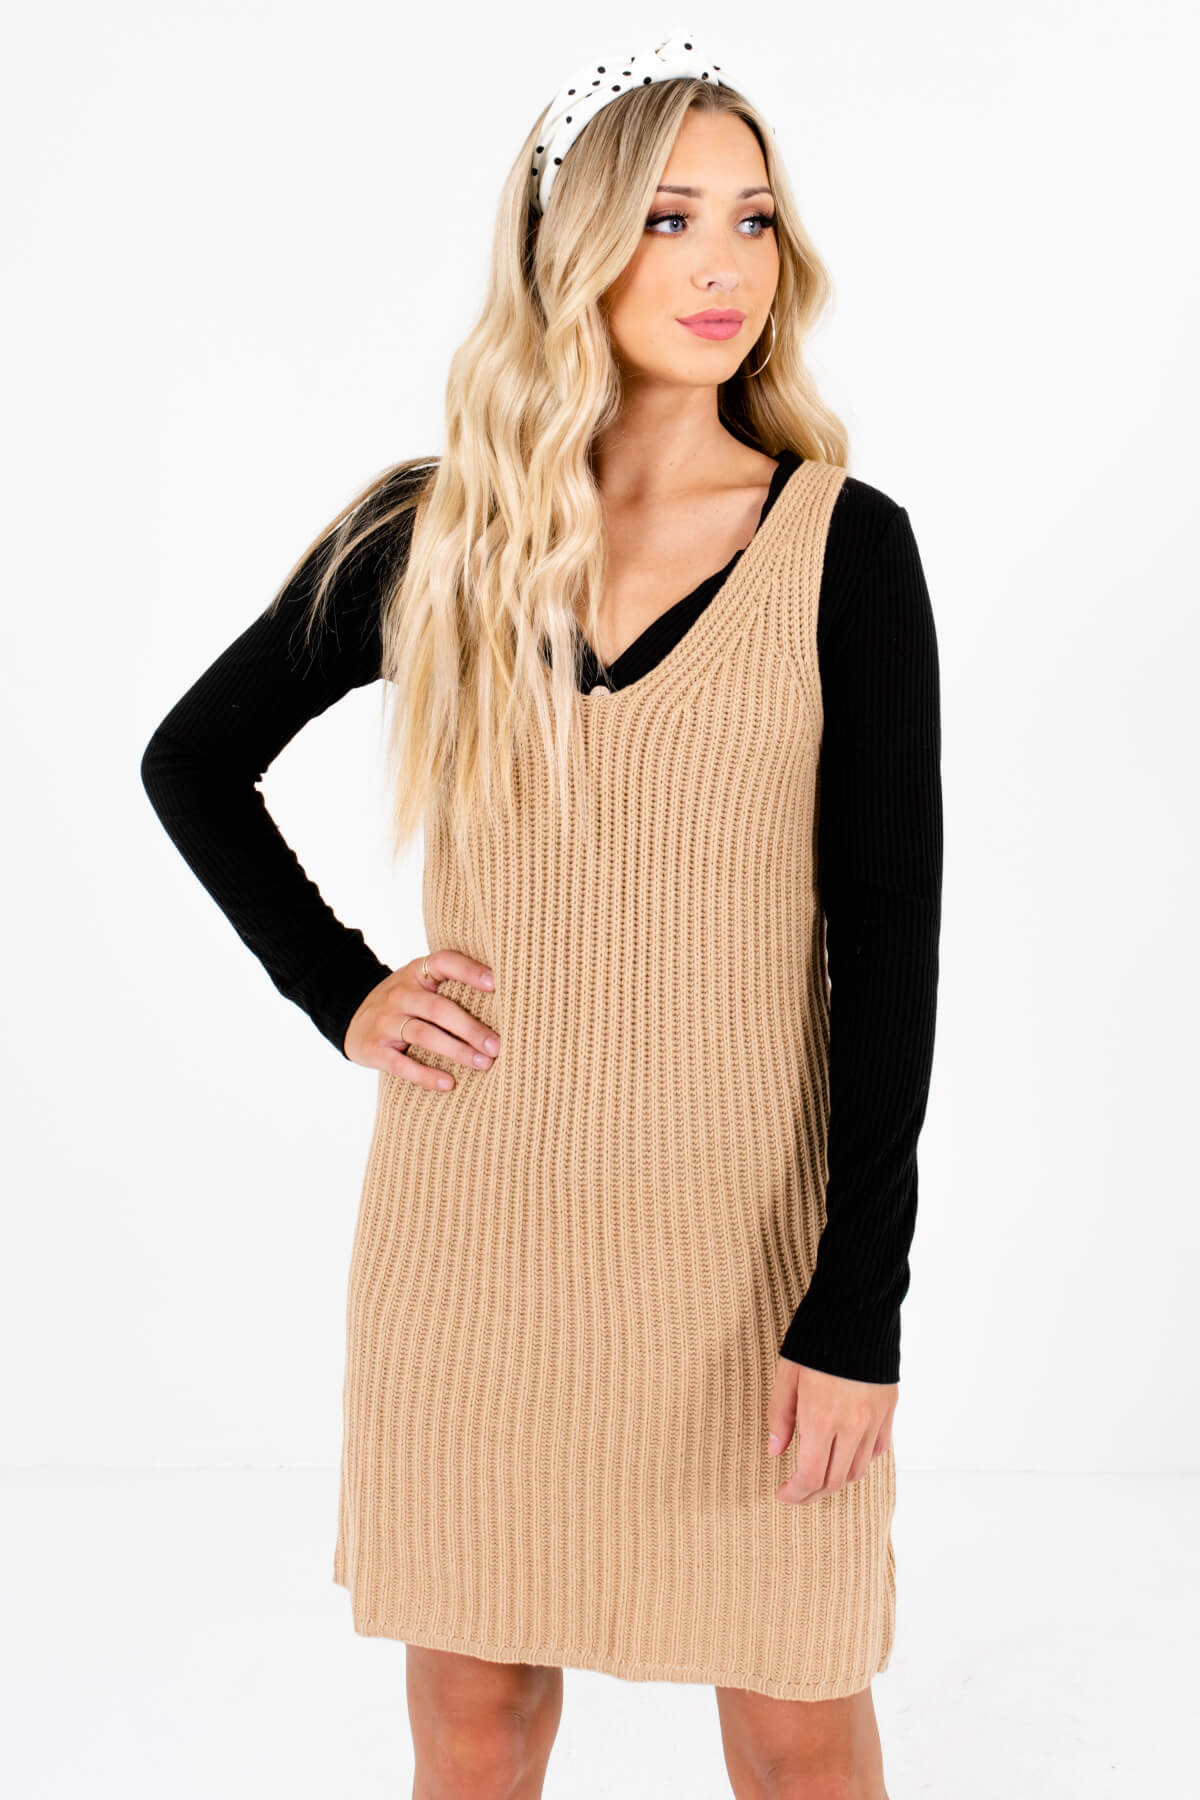 Beige Brown High-Quality Knit Material Boutique Mini Dresses for Women